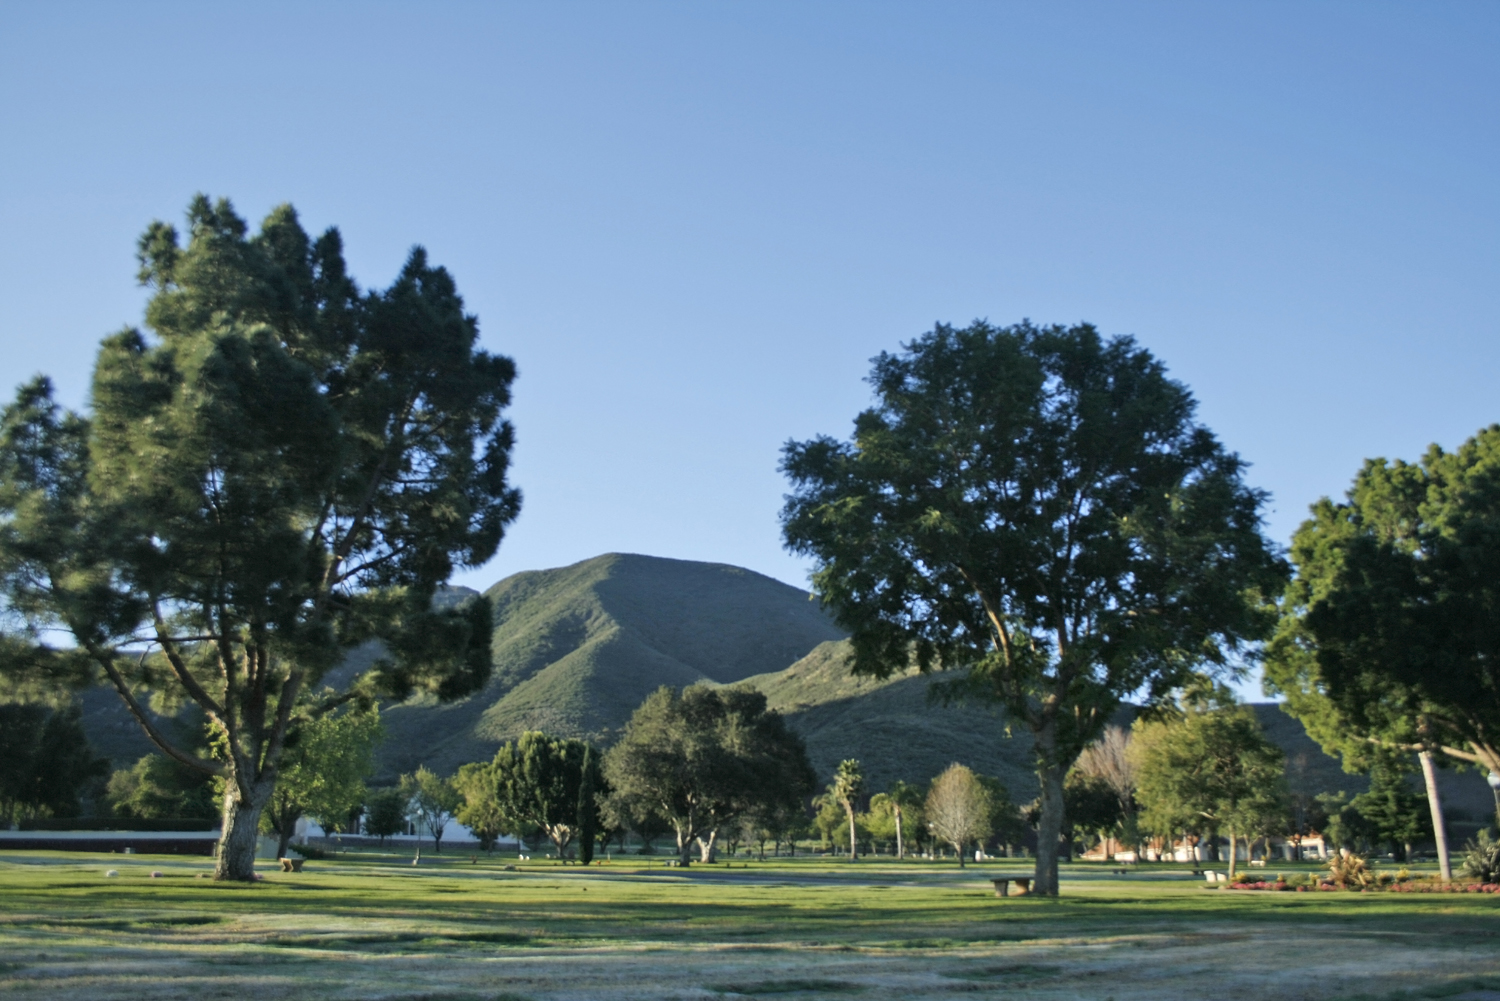 Conejo Mountain Funeral Home, Memorial Park & Crematory